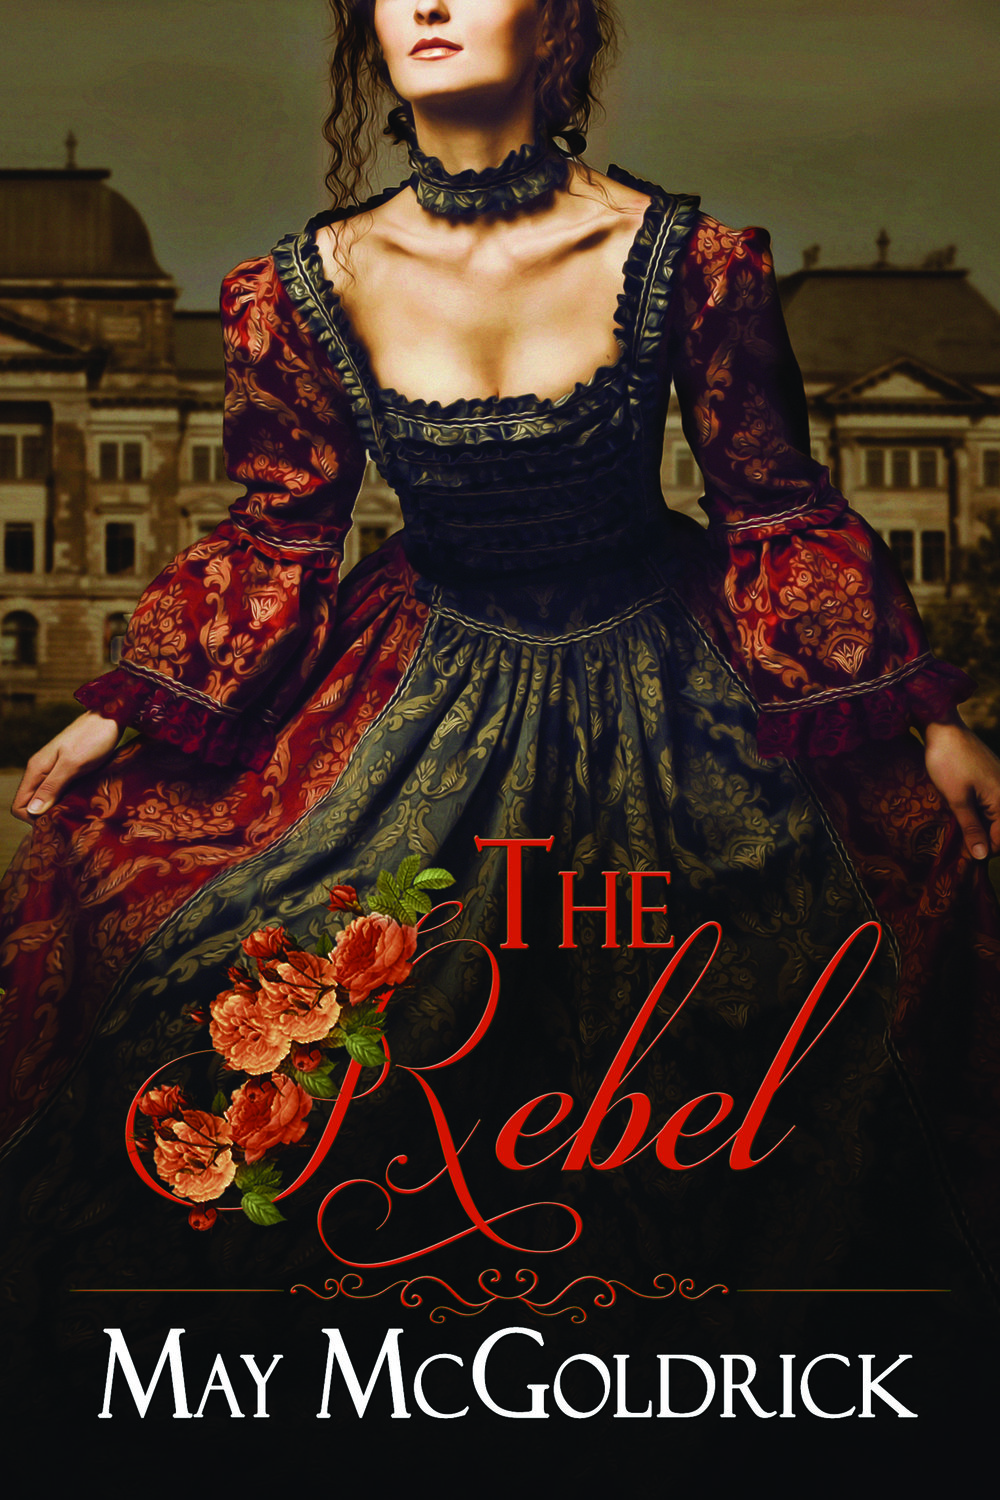 THE rebel print high res.jpg